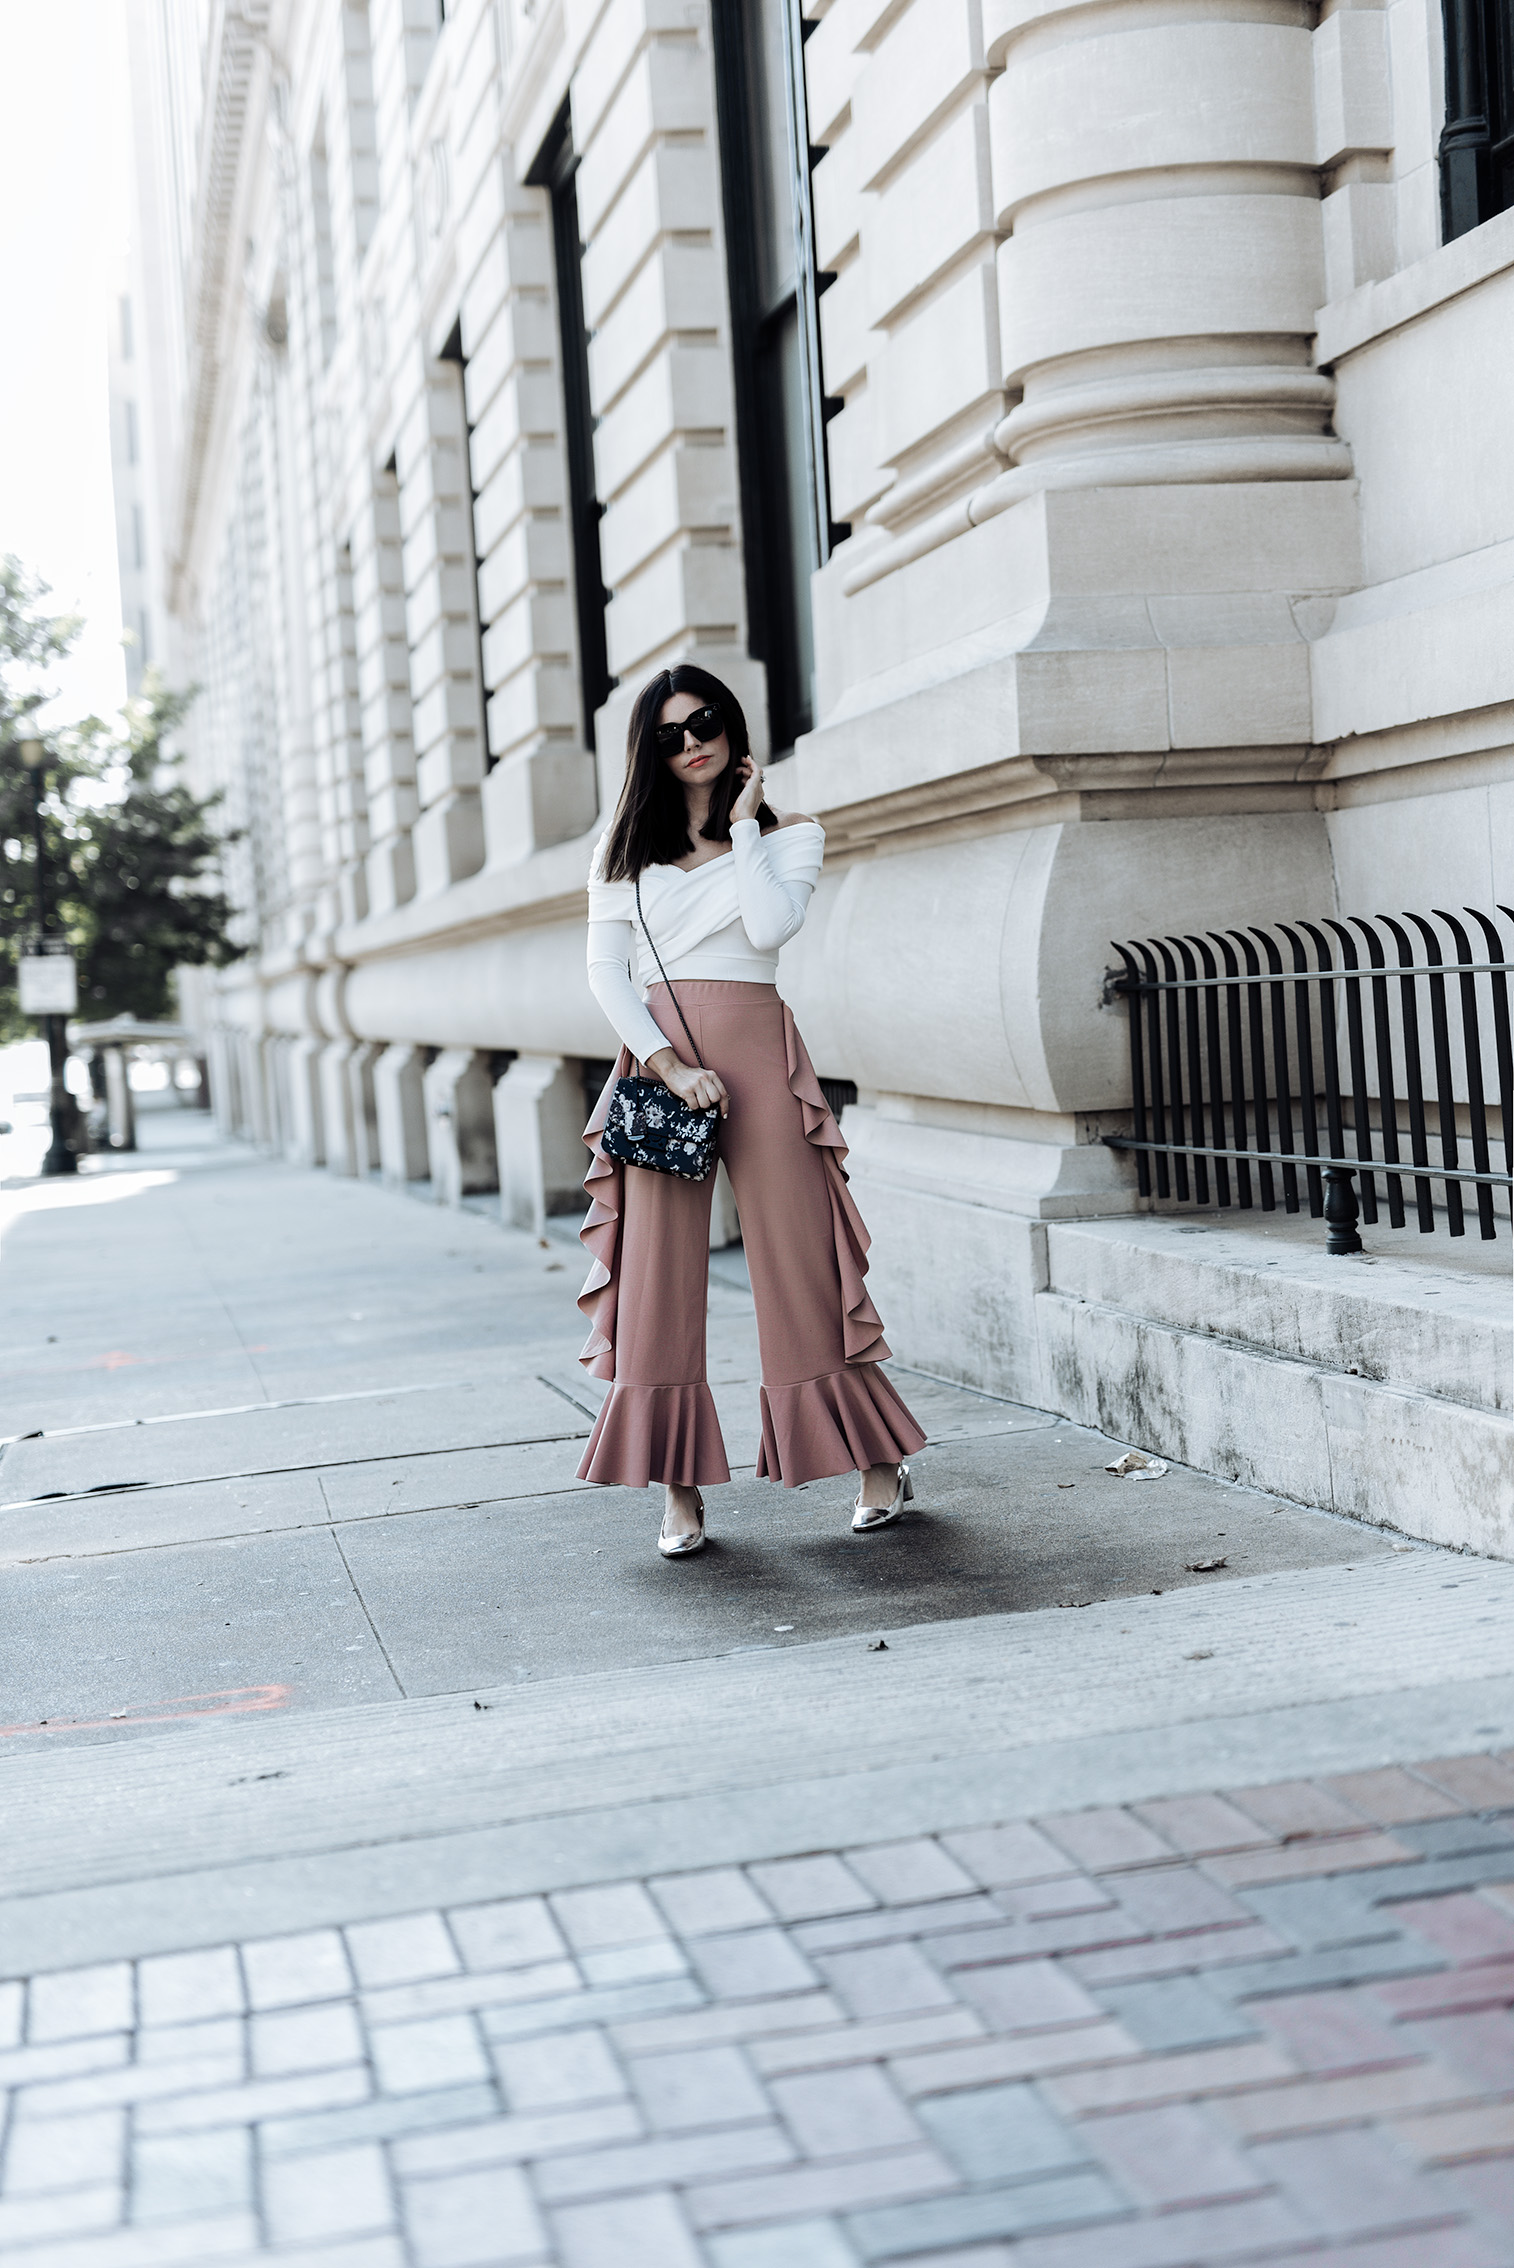 Ruffle Pant Trend, click to shop the look   Streetstyle blog, blog, Edie Ruffle Side Pant   {C/O} Waldorf Floral Print Party Bag   Off the Shoulder Crop Top   Silver pumps (Via Zara, Similar here)